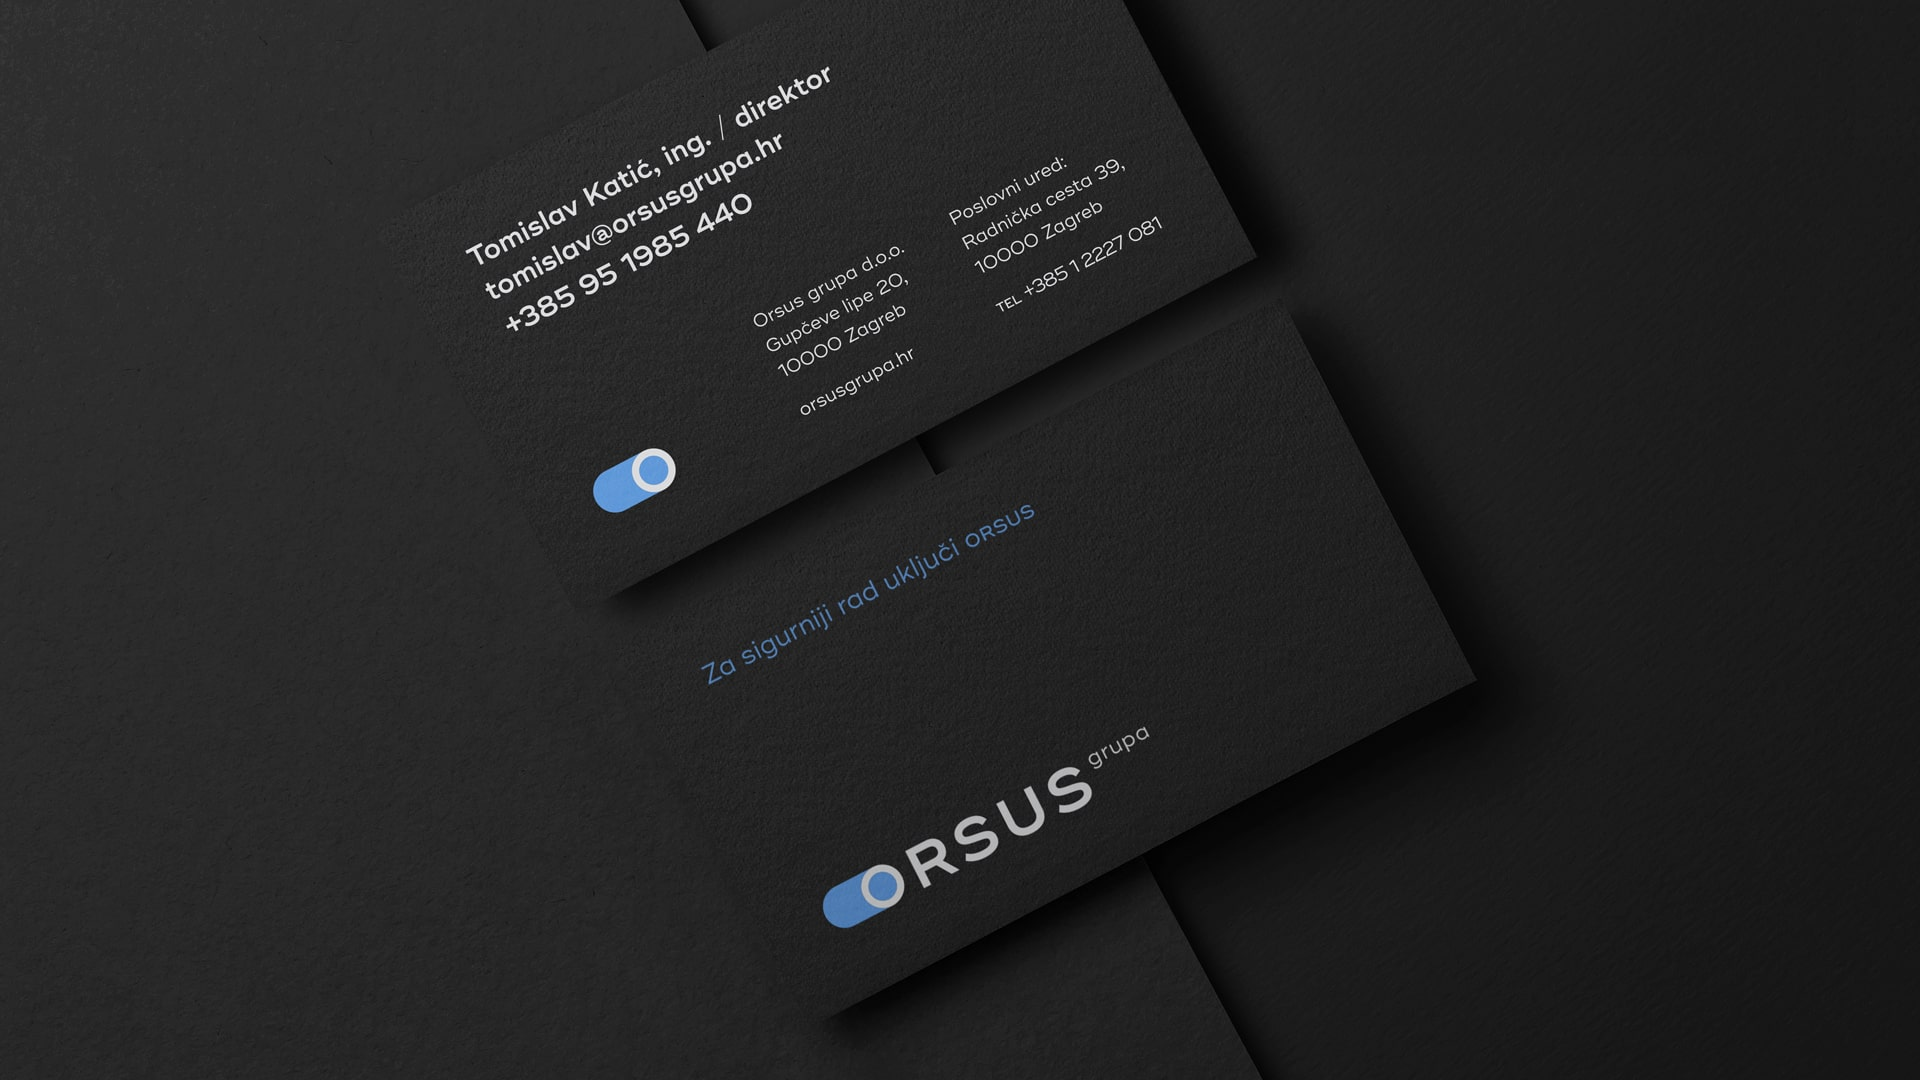 Orsus-grupa-by-Emtisquare